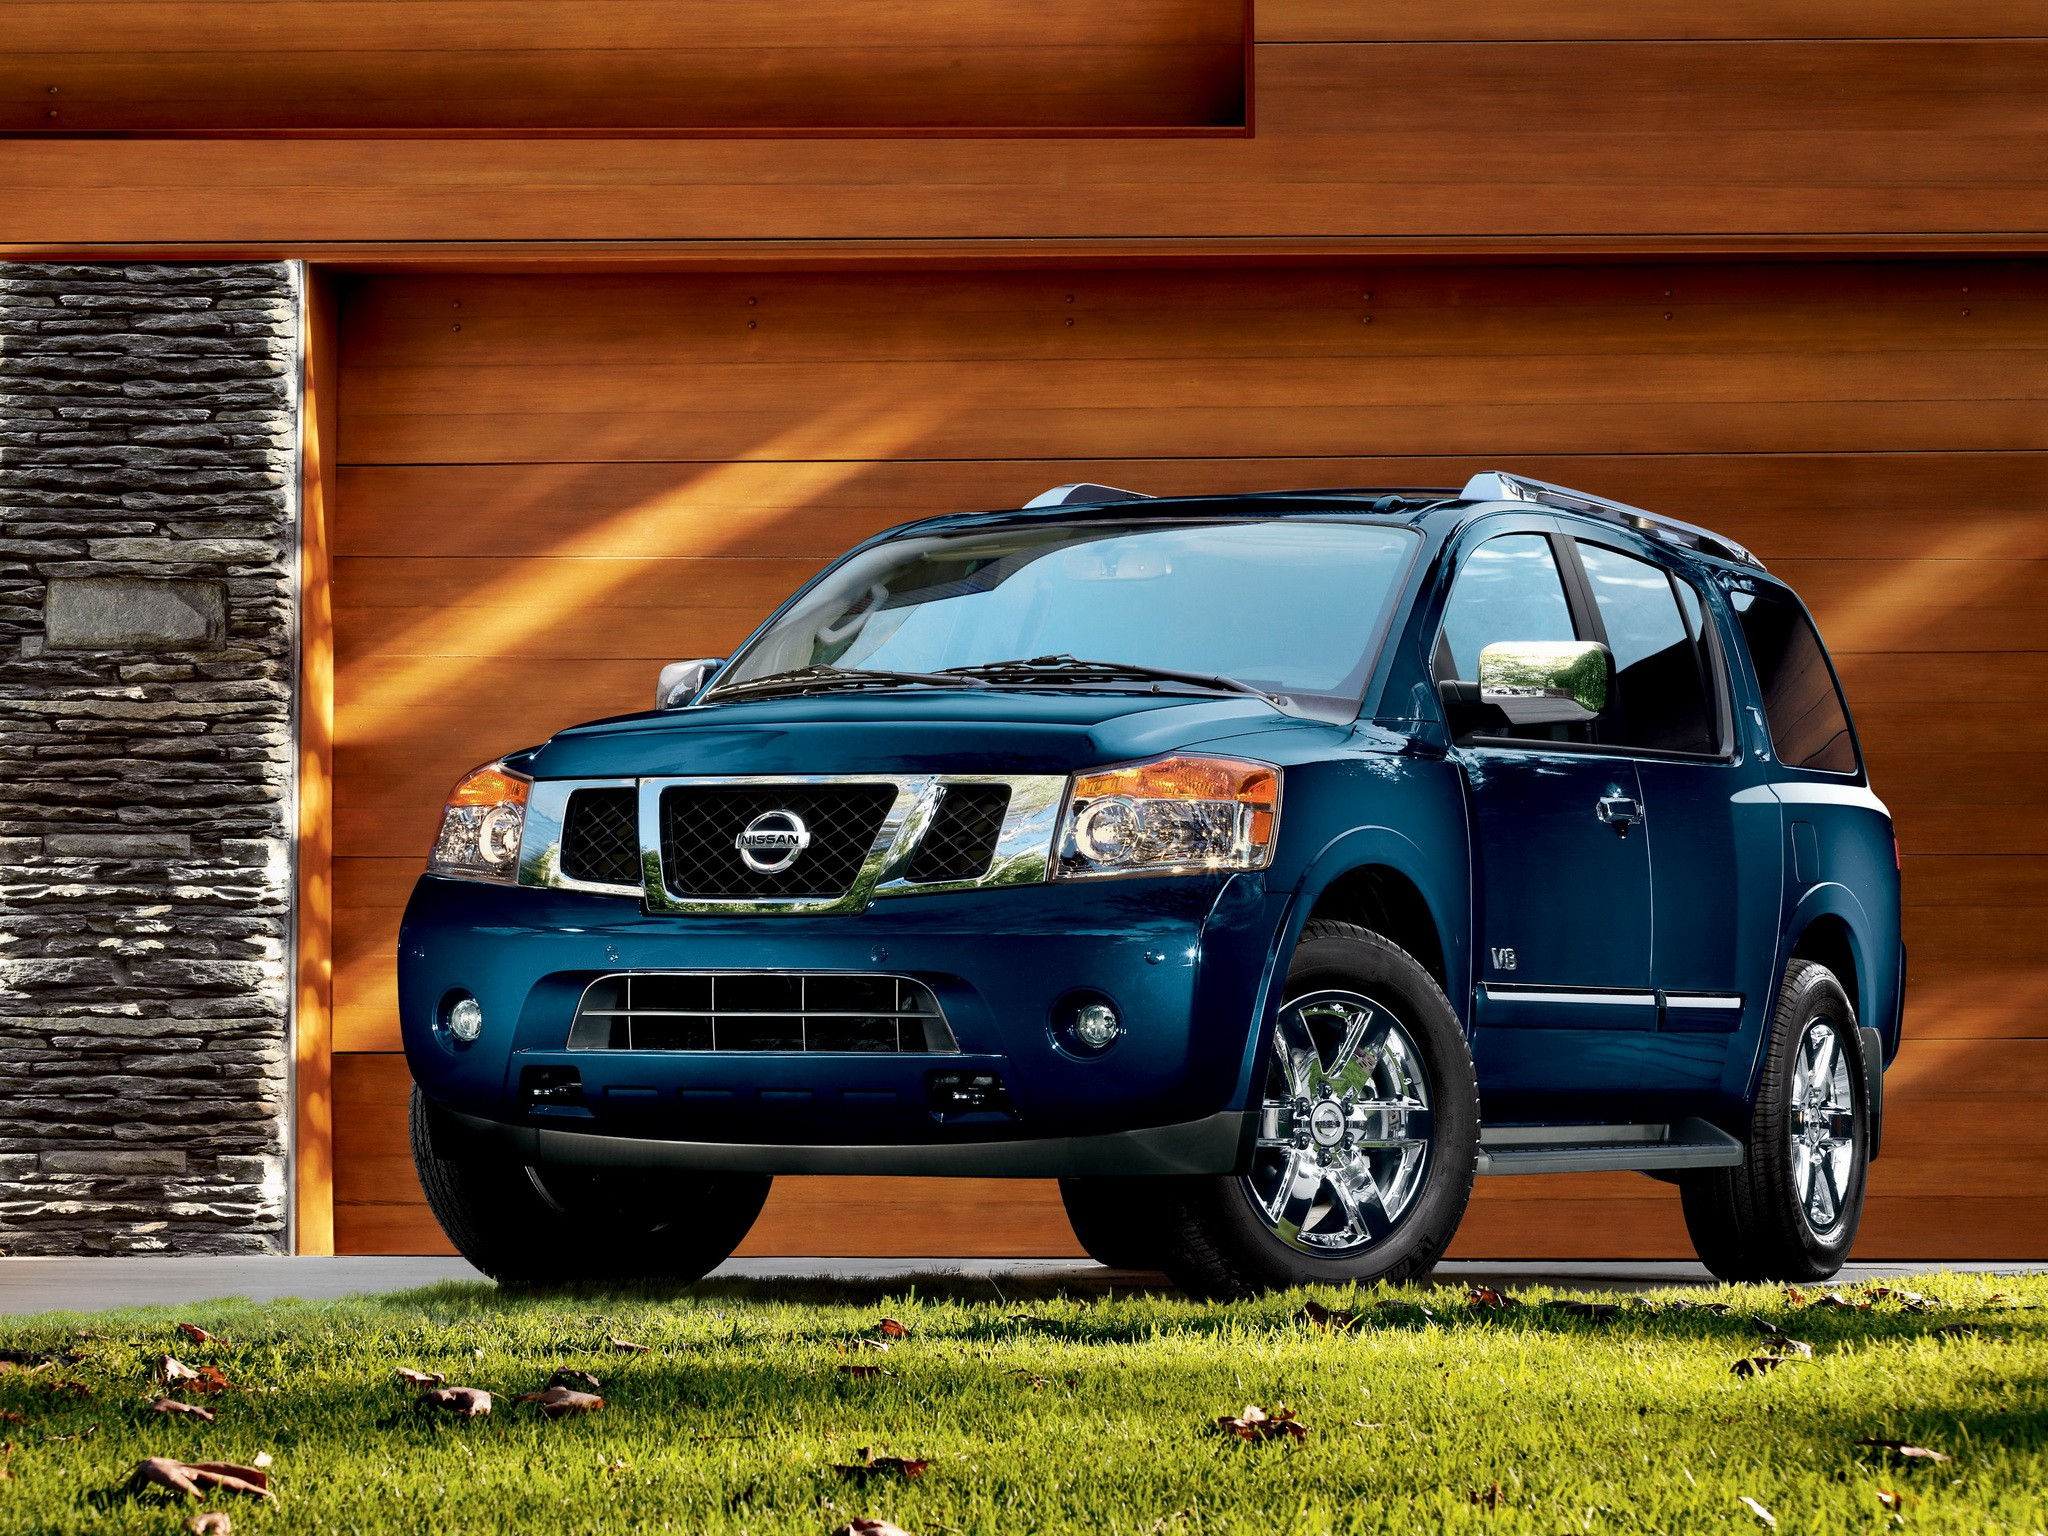 nissan armada specs 2008 2009 2010 2011 2012 2013 2014 2015 2016 autoevolution. Black Bedroom Furniture Sets. Home Design Ideas